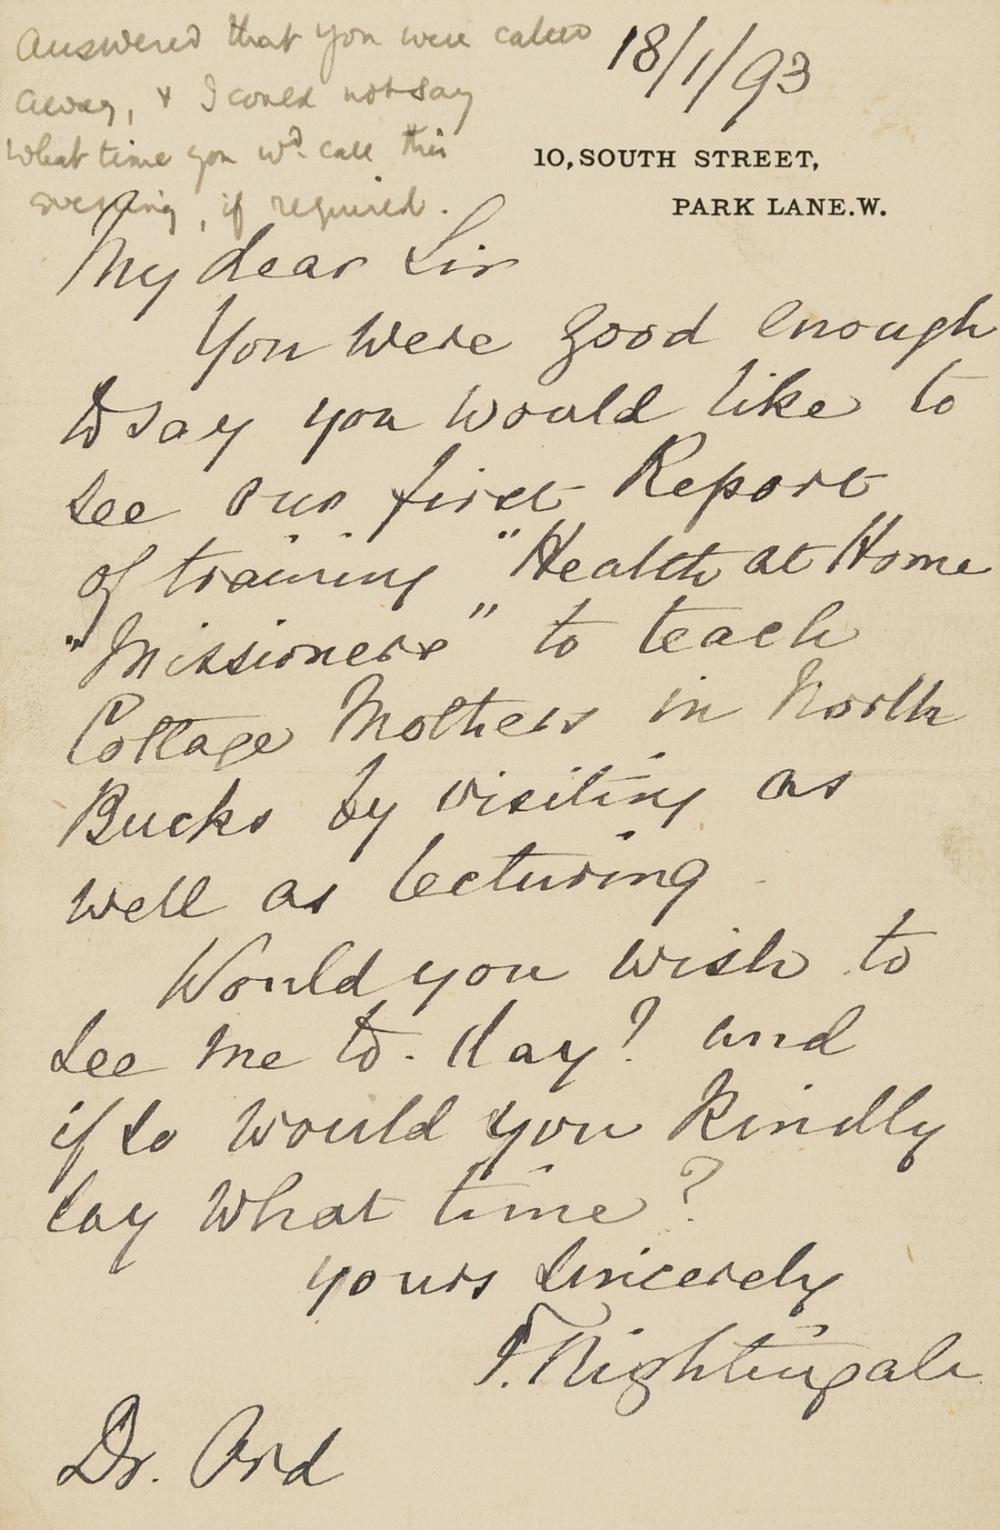 """Nightingale (Florence) Autograph Letter signed to Dr Ord, 1893, """"You were so good enough to say you would like to see our first Report of training 'Health at Home Missioners' to teach Cottage Mothers …"""